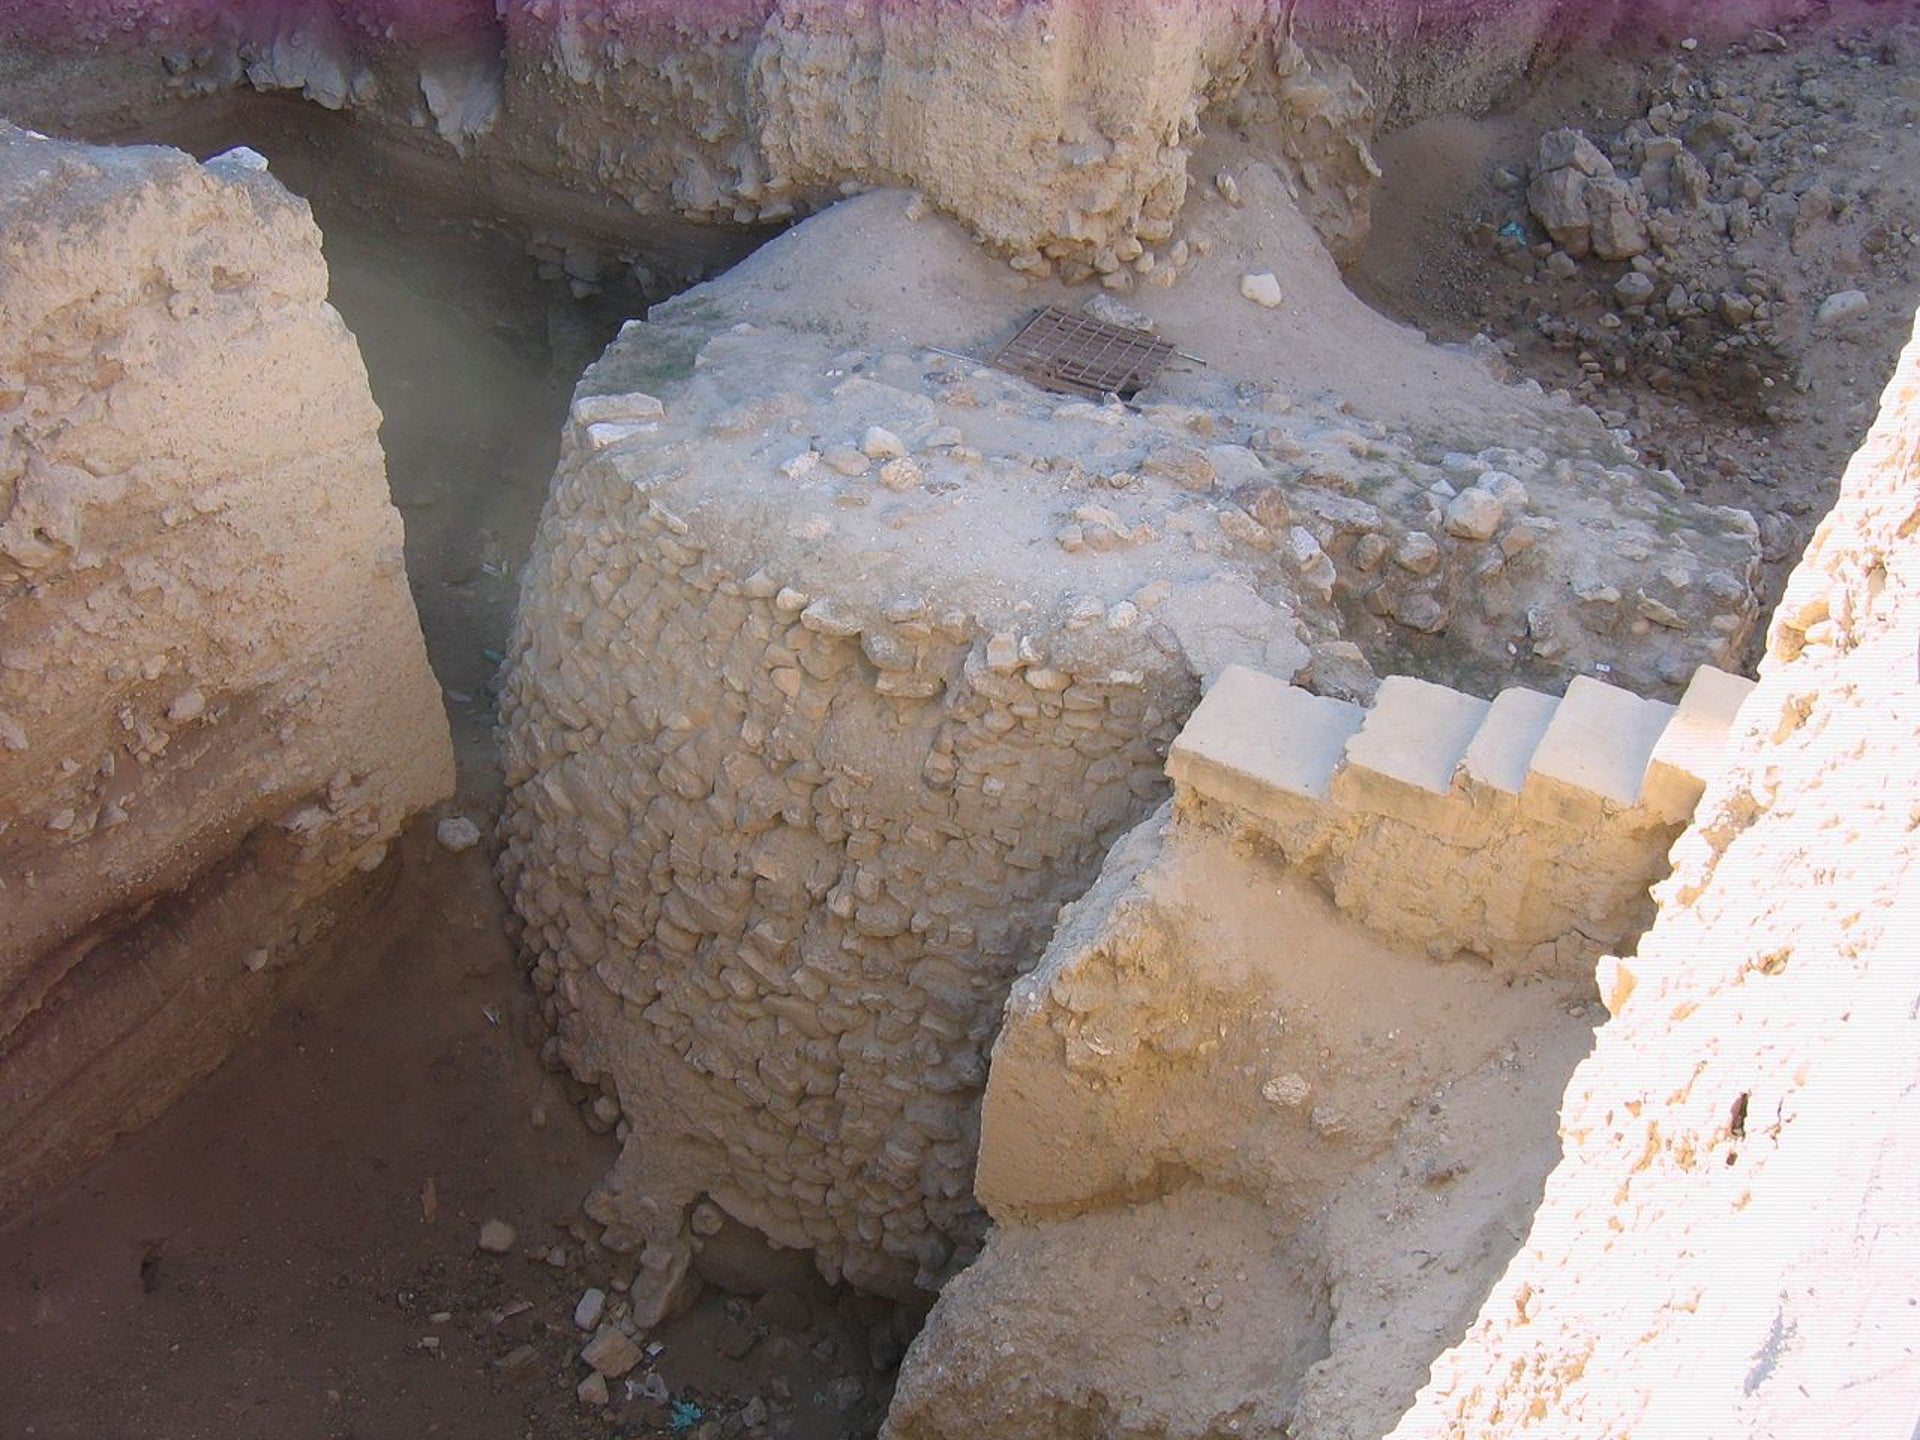 The Tower of Jericho, an 8.5-meter tall stone structure found in ancient Jericho, dating back some 10,000 years. Nine meters at he base, it rises to a width of seven meters on top and has walls almost 1.5 meters thick, making  it among the earliest fortifications known to man.